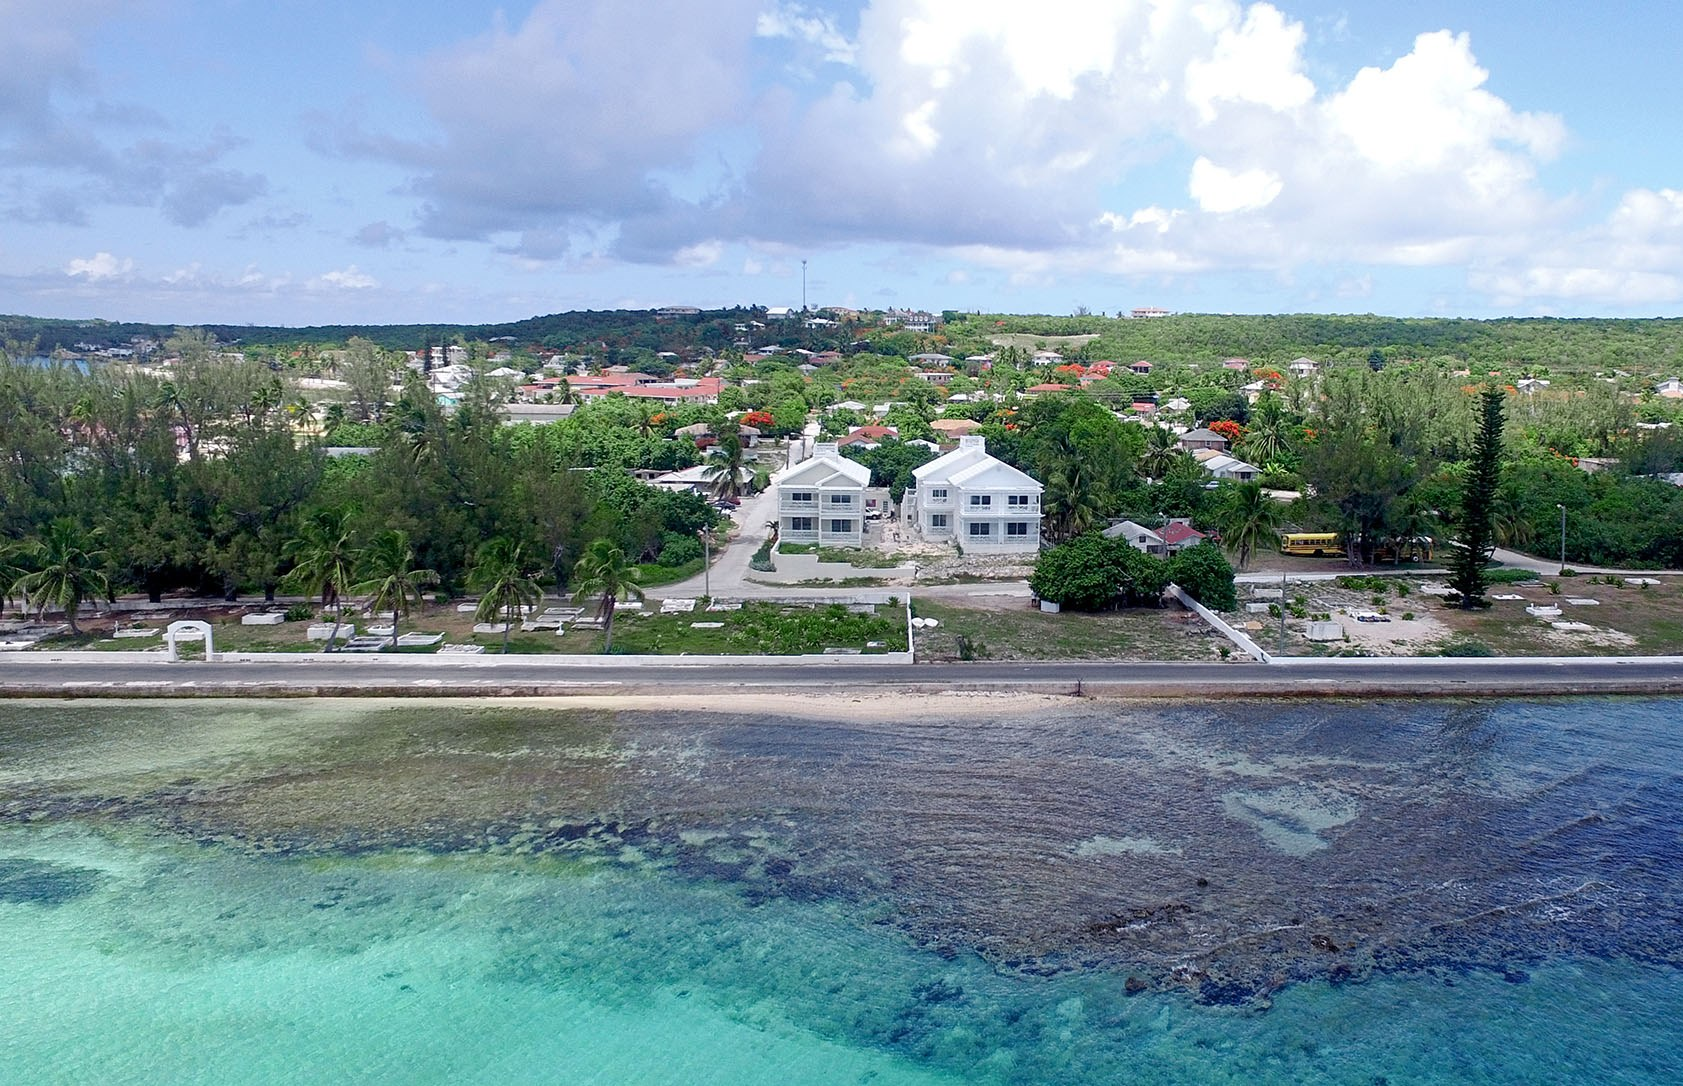 Co-op / Condo for Sale at Excellent Condo Opportunity - MLS 31634 Governors Harbour, Eleuthera, Bahamas